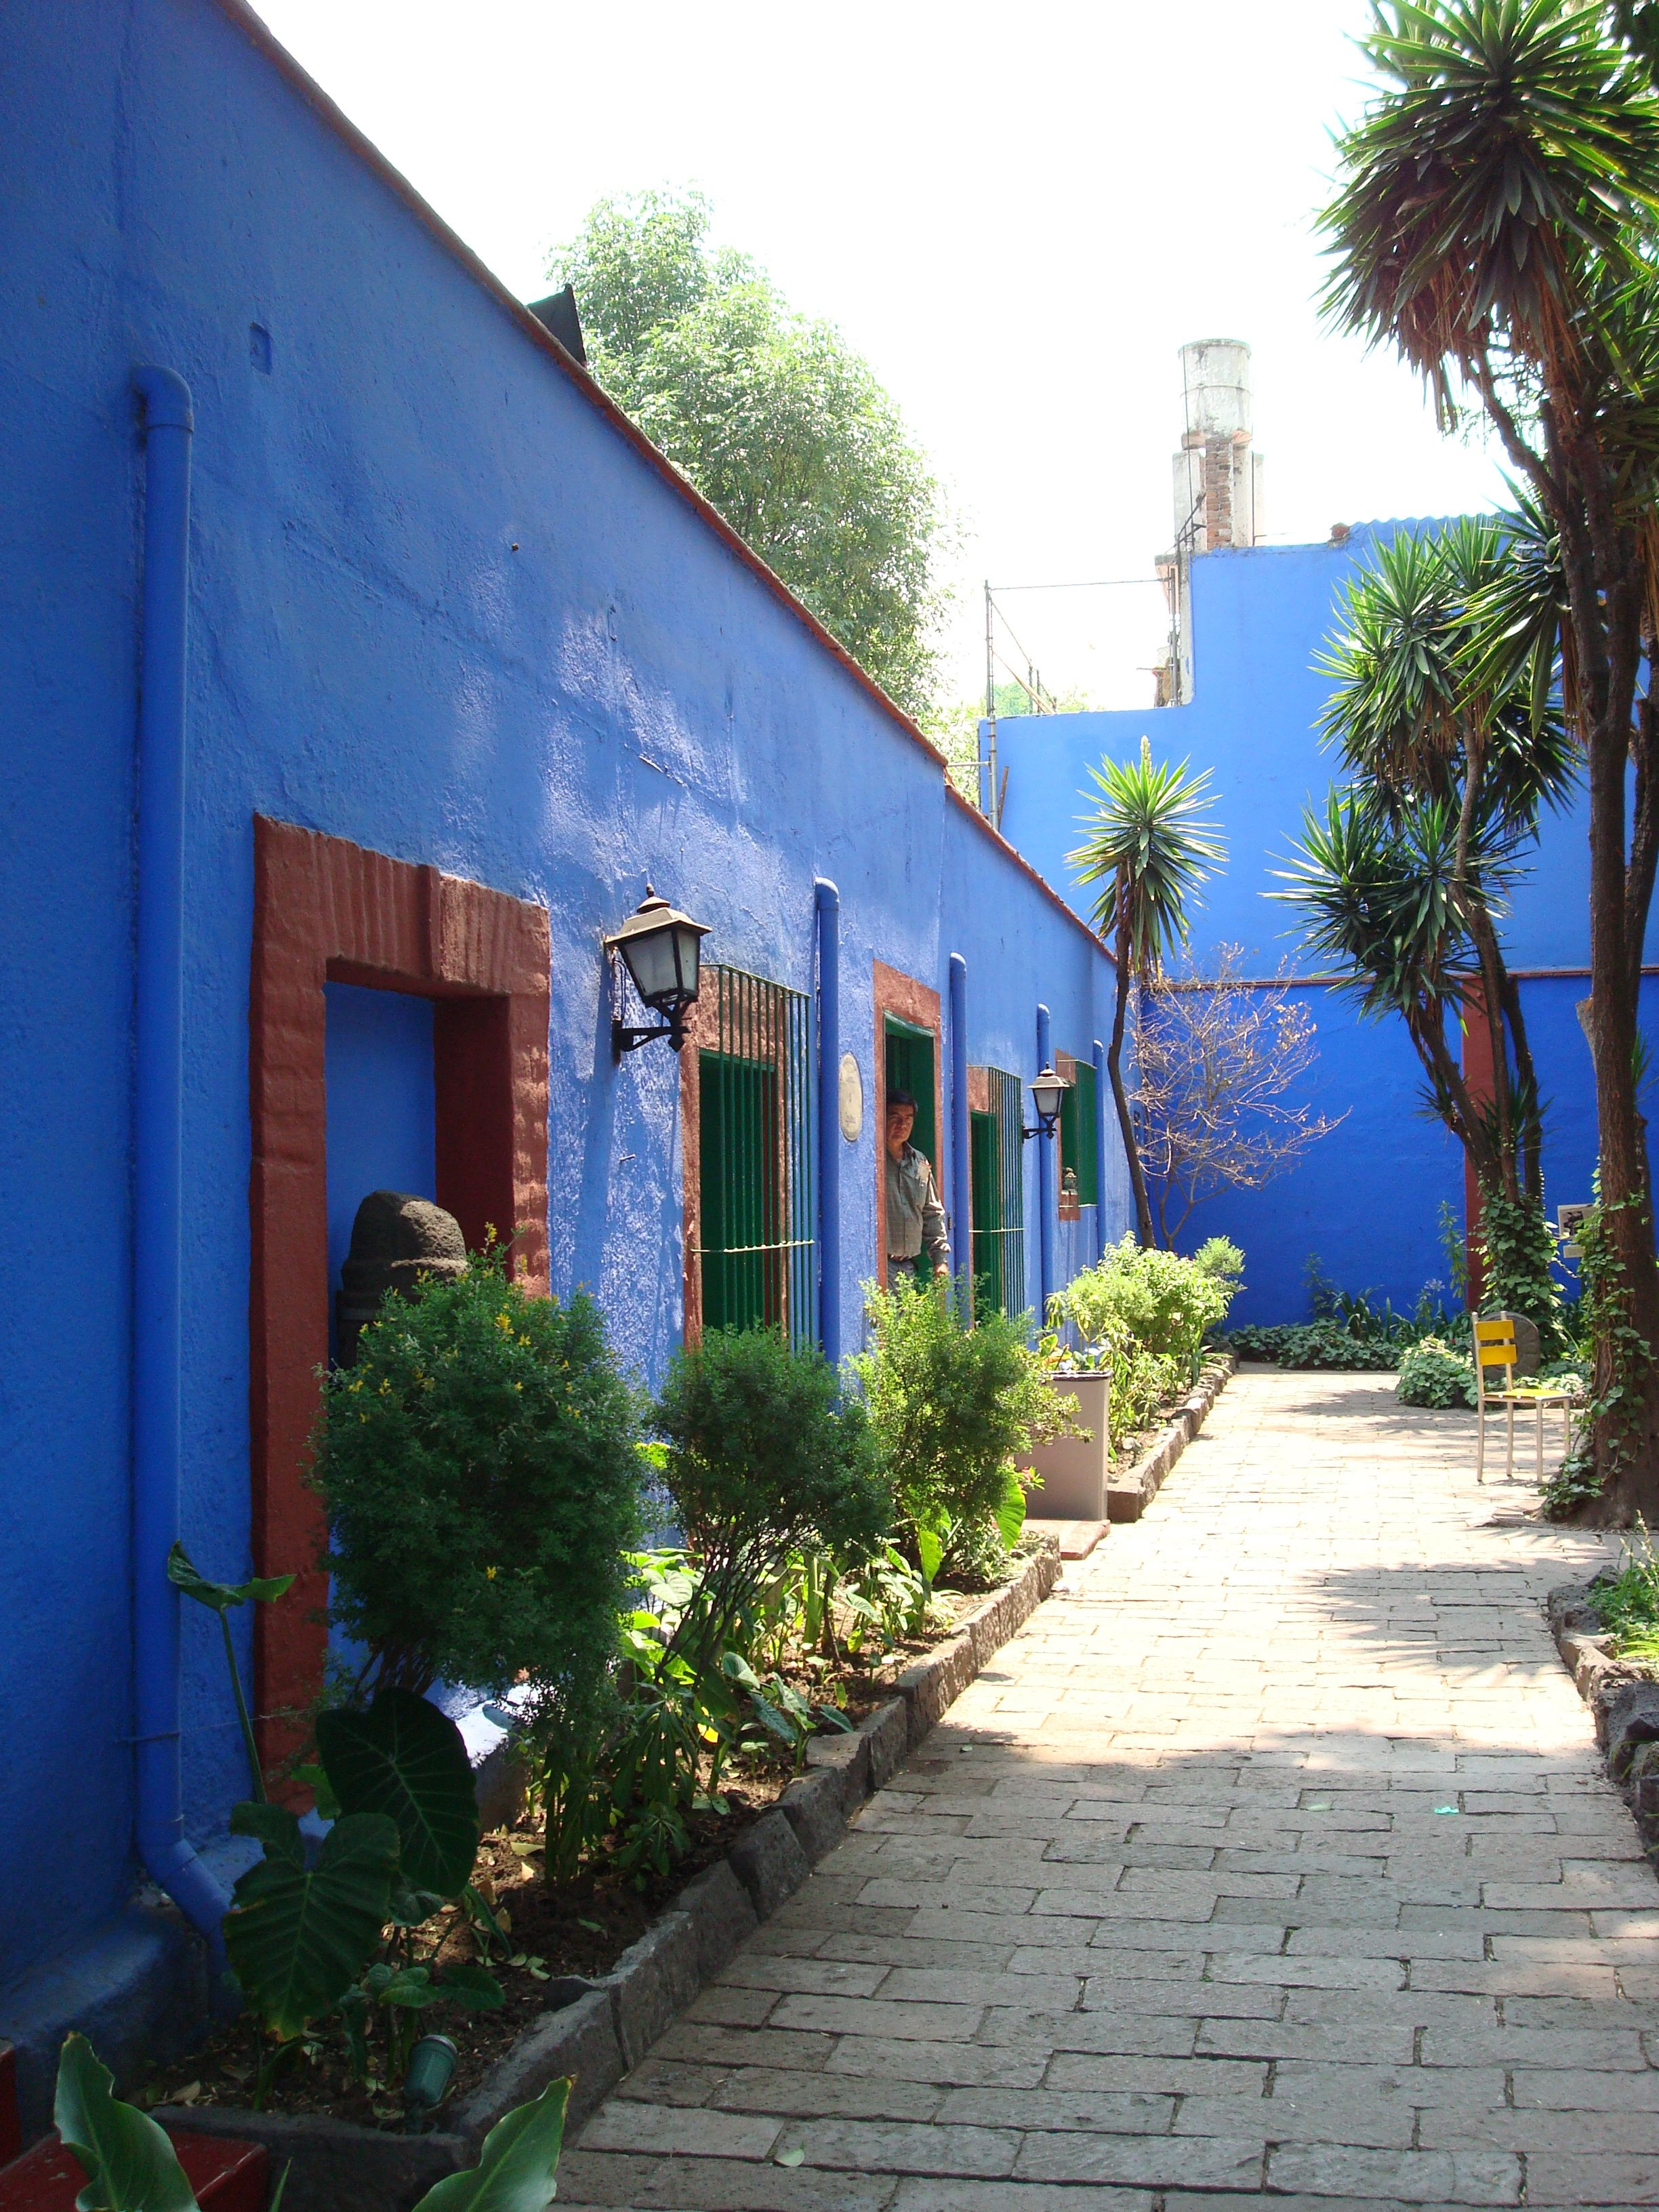 The Blue House Coyacan Mexico Frida Kahlo S Childhood Home And